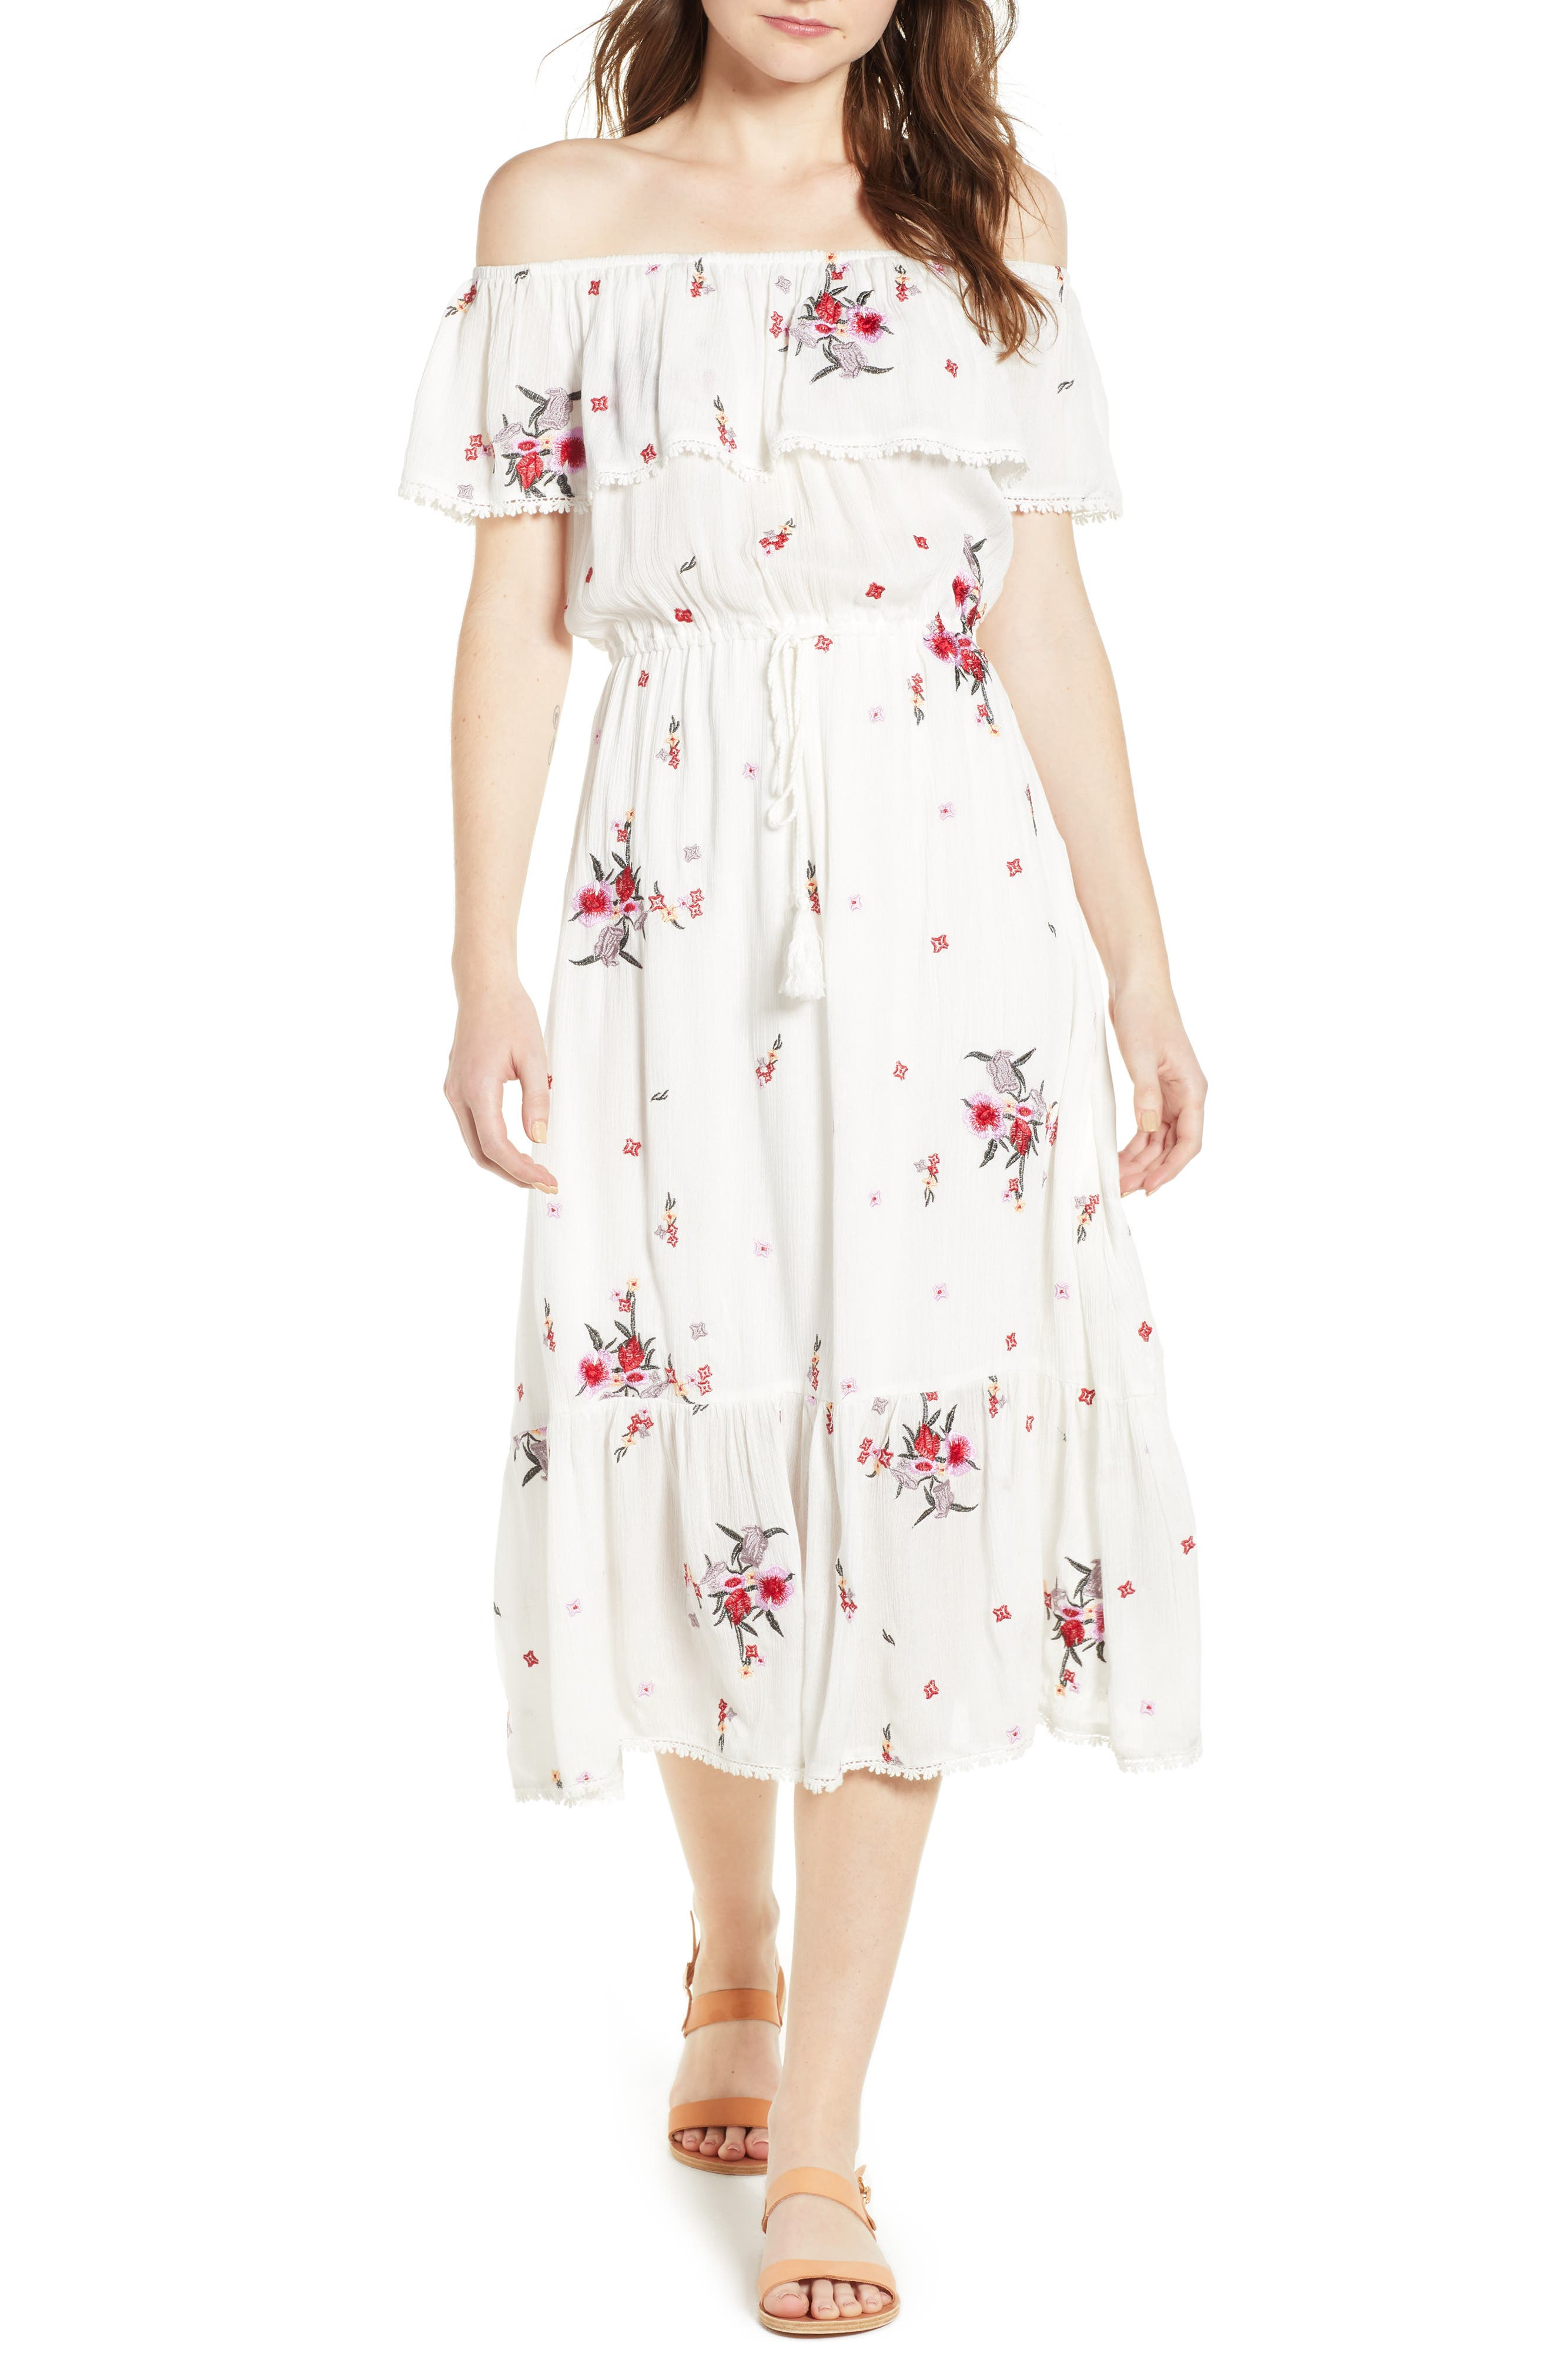 Senorita Embroidered Off the Shoulder Midi Dress,                             Main thumbnail 1, color,                             White Floral